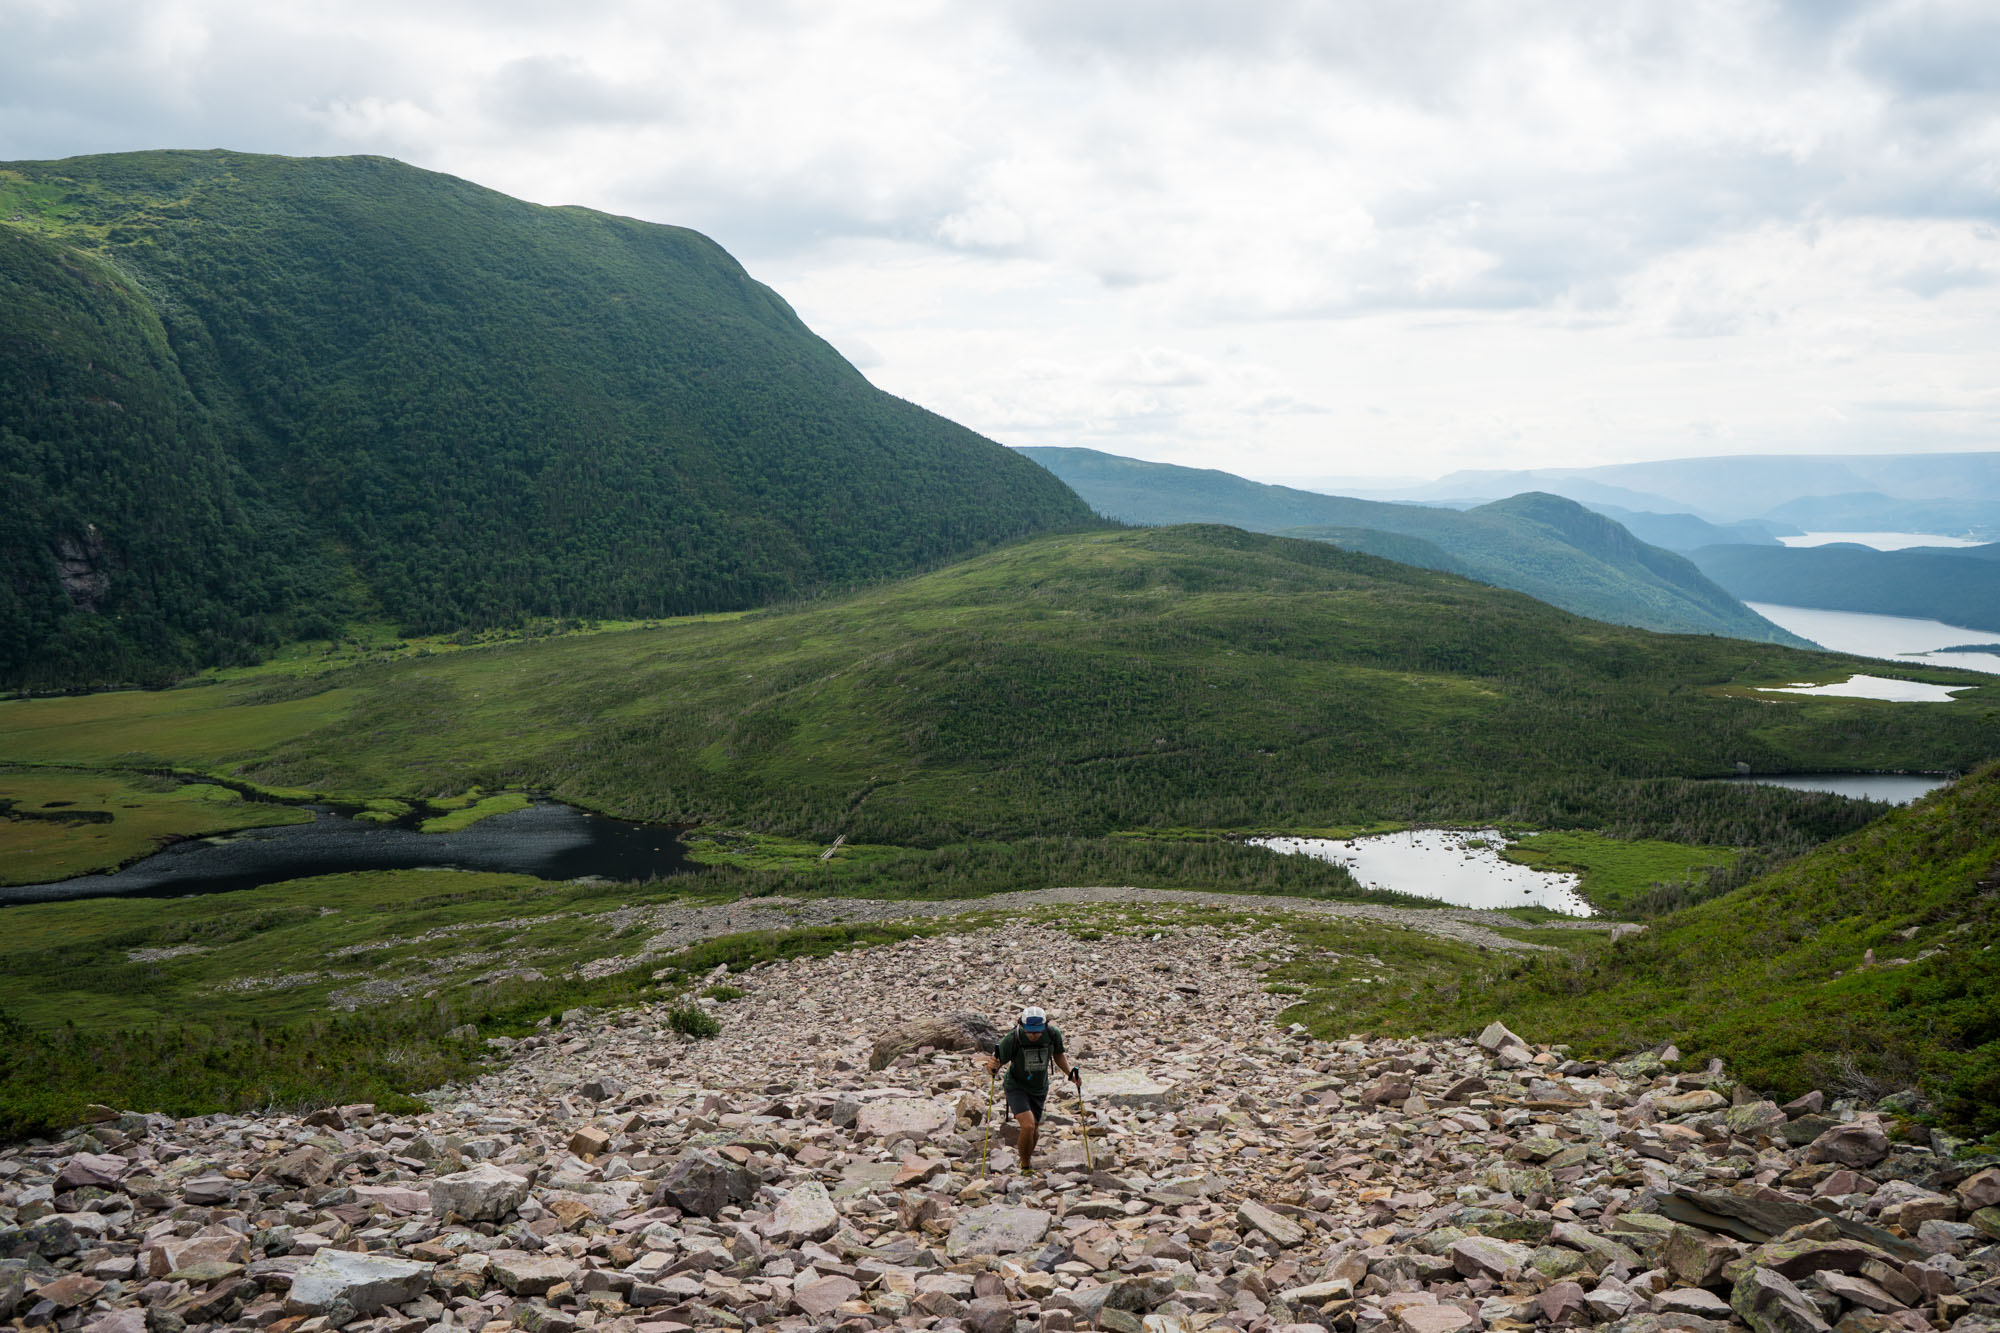 Owen starting the trail up to the summit of Gros Morne via the rocky mountain side